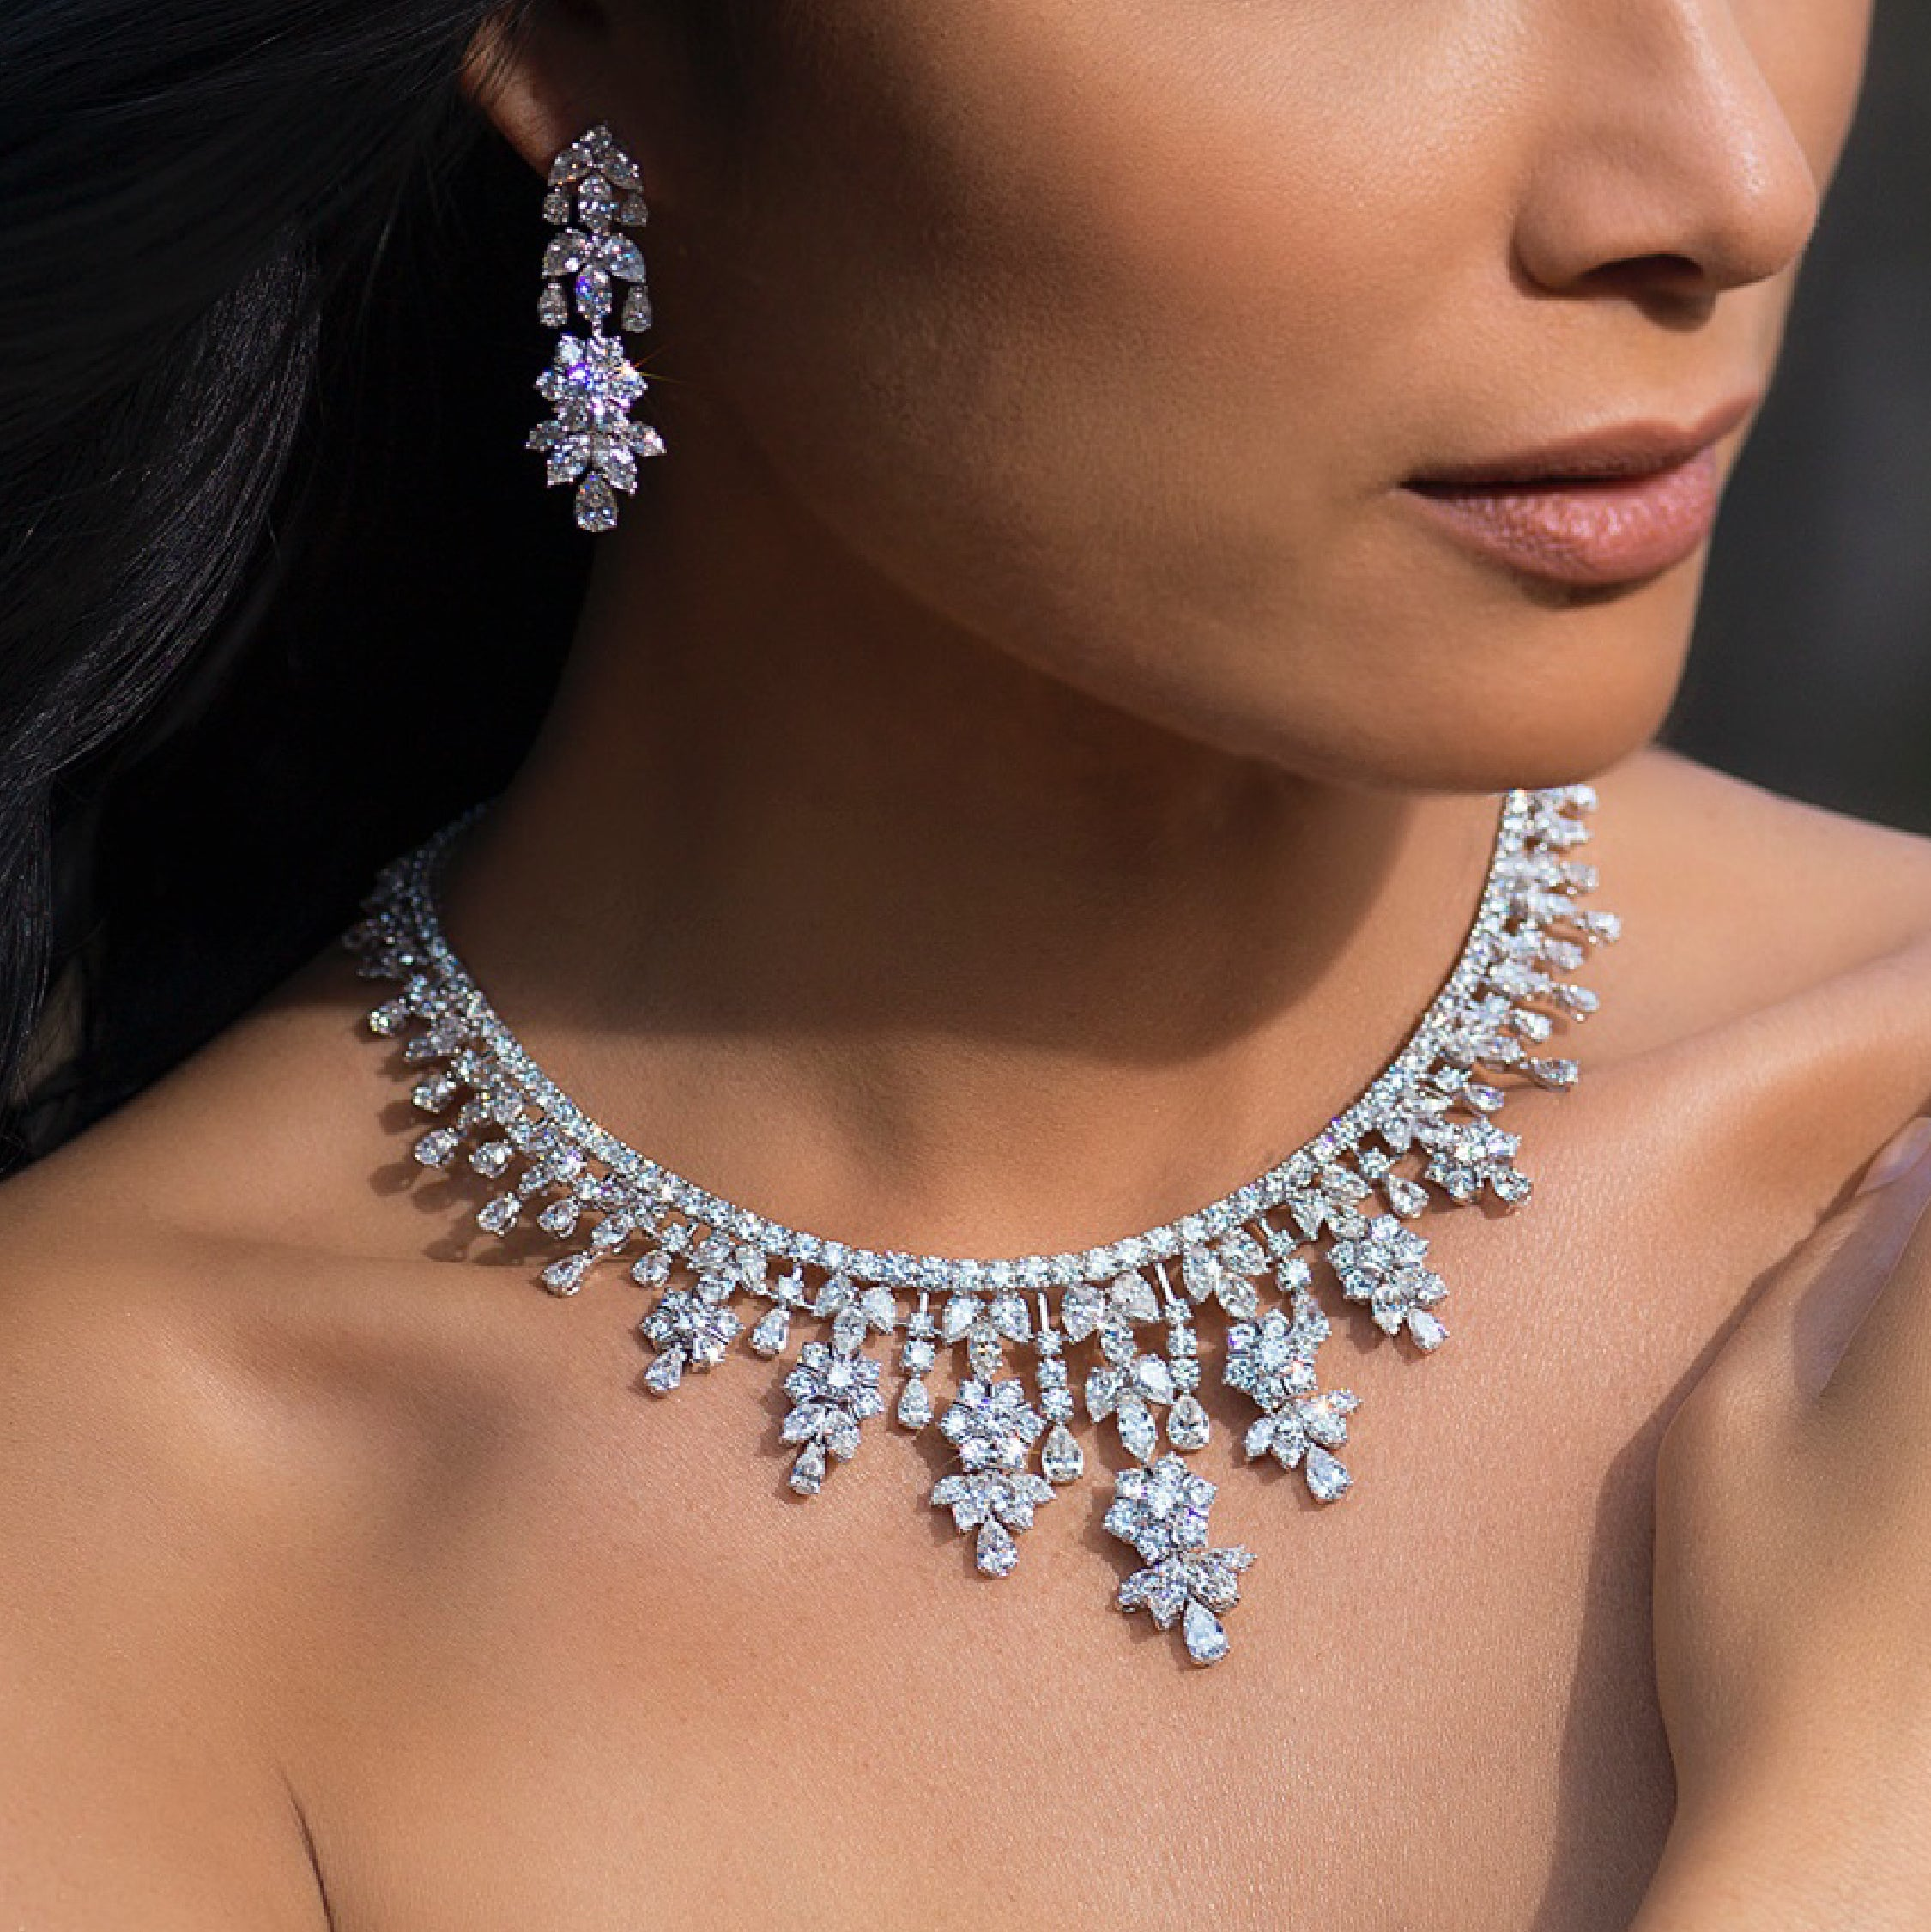 Buy necklace online in Saudi Arabia | Jewellery store in Bahrain